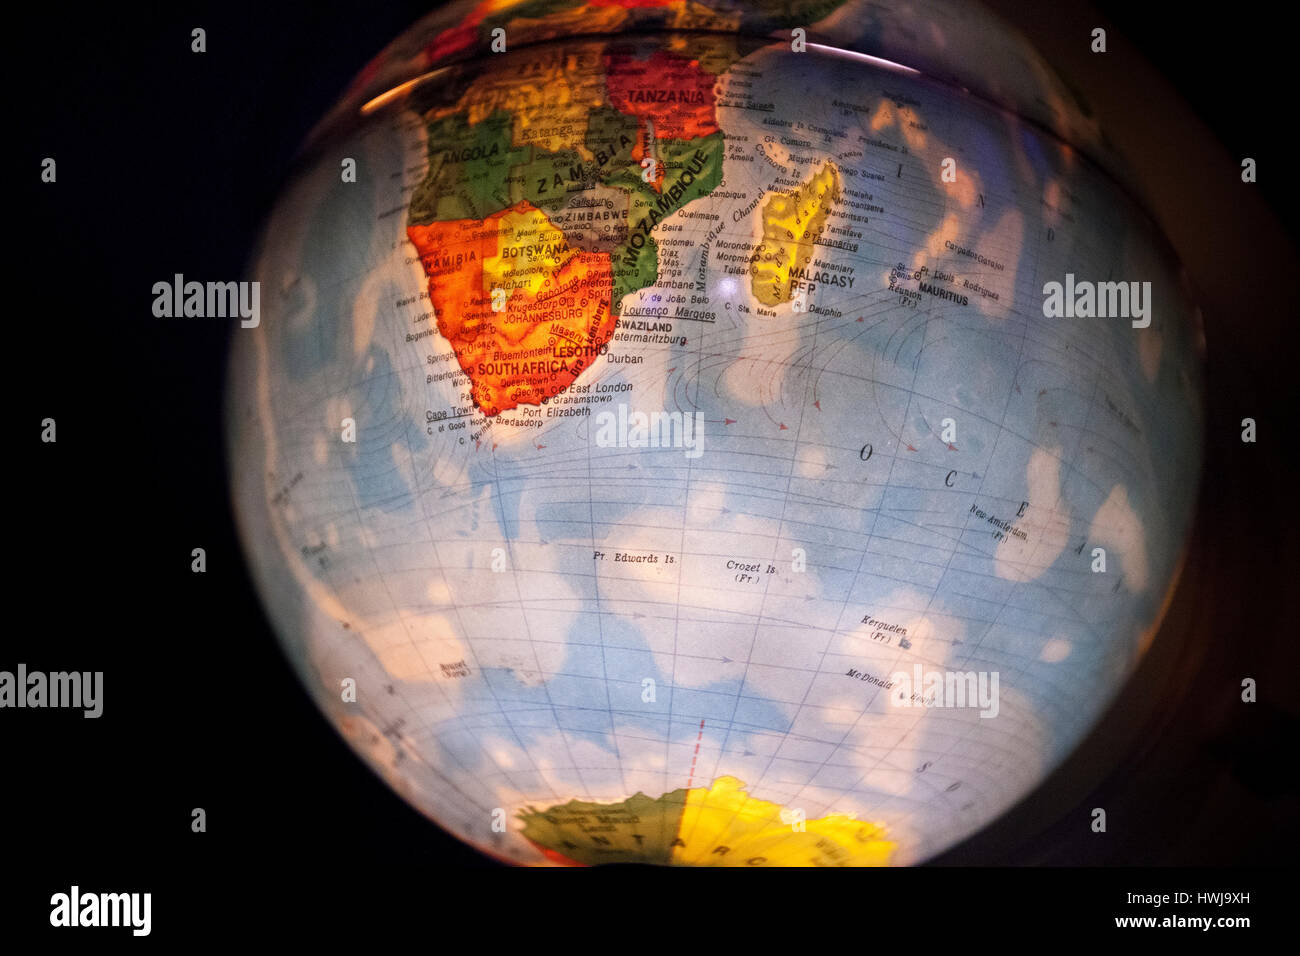 Close up of old fashioned world globe a ball shaped map lit from close up of old fashioned world globe a ball shaped map lit from within focusing on europe south africa and asia gumiabroncs Images